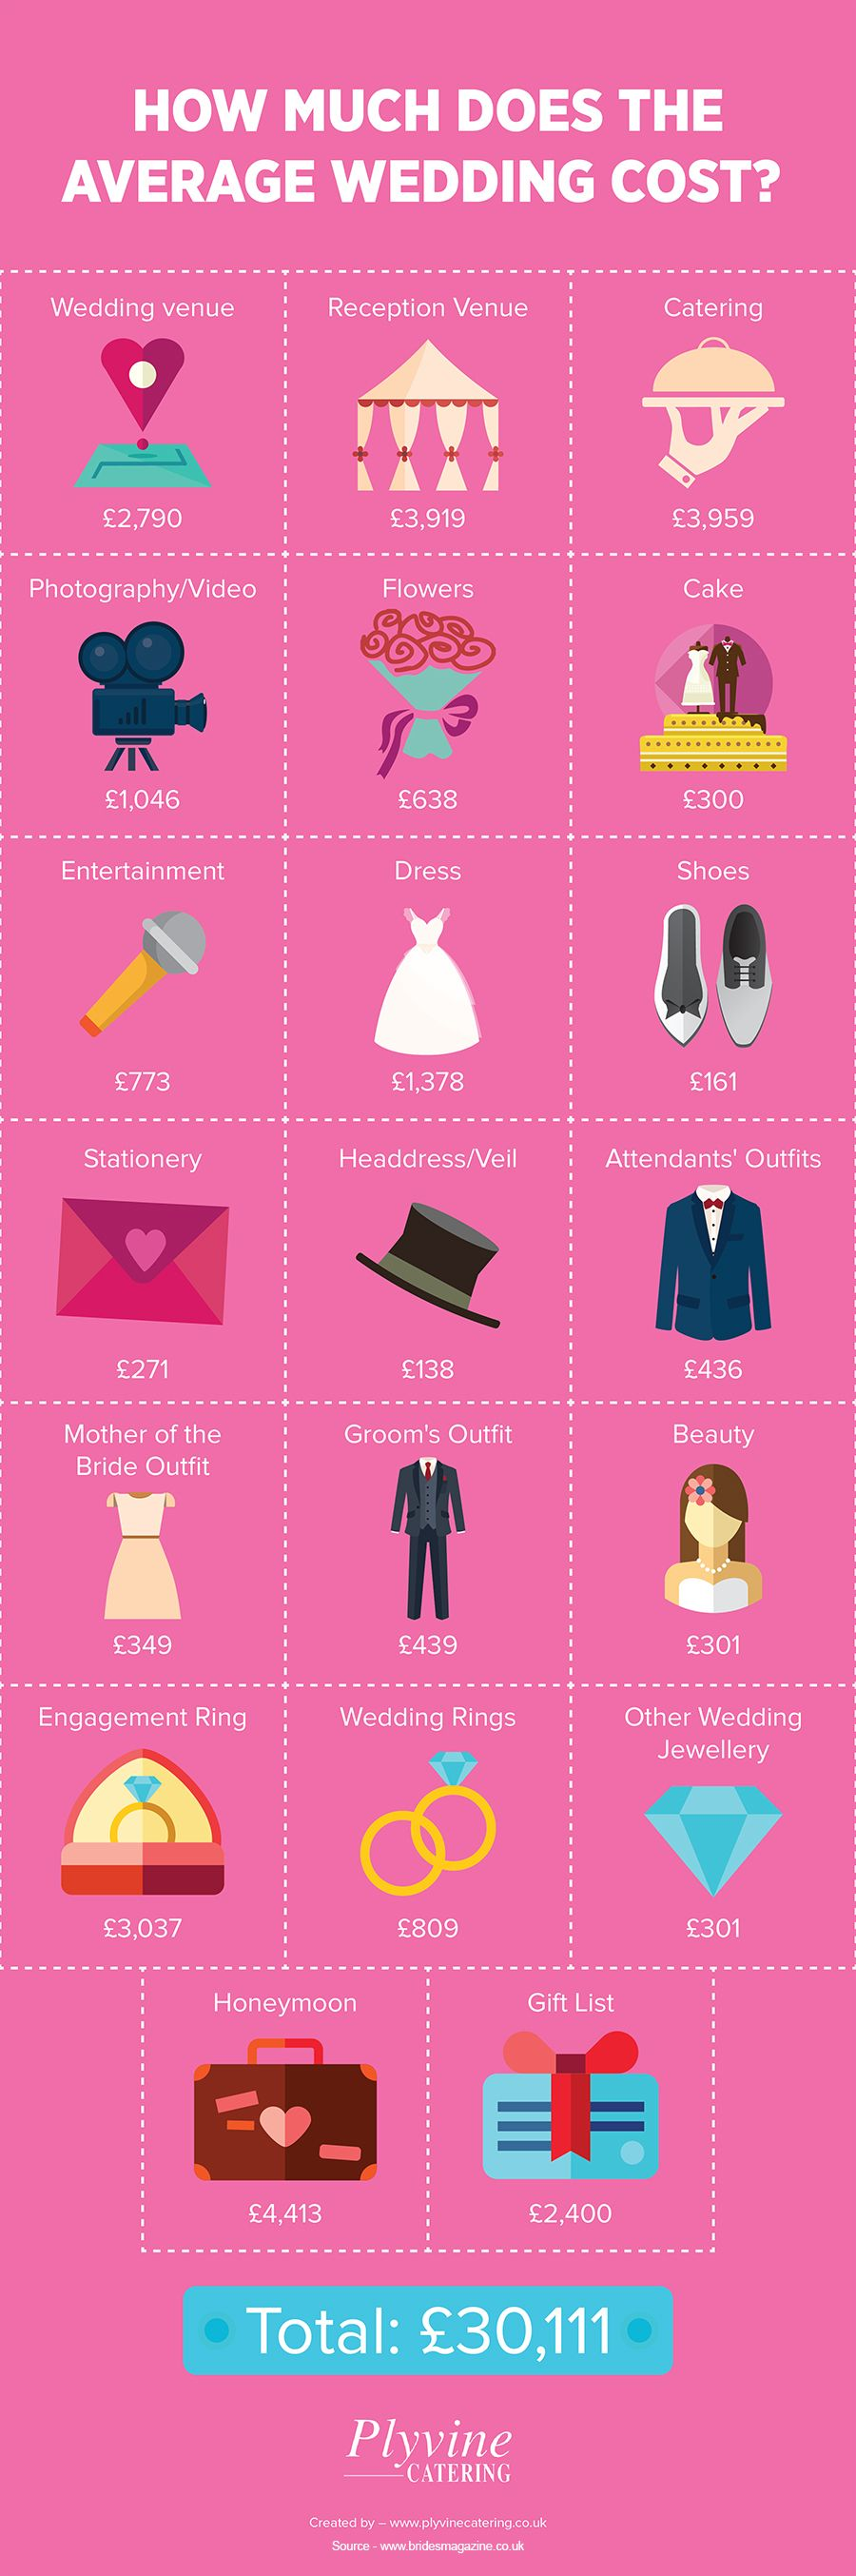 How Much Does the Average Wedding Cost? Average wedding